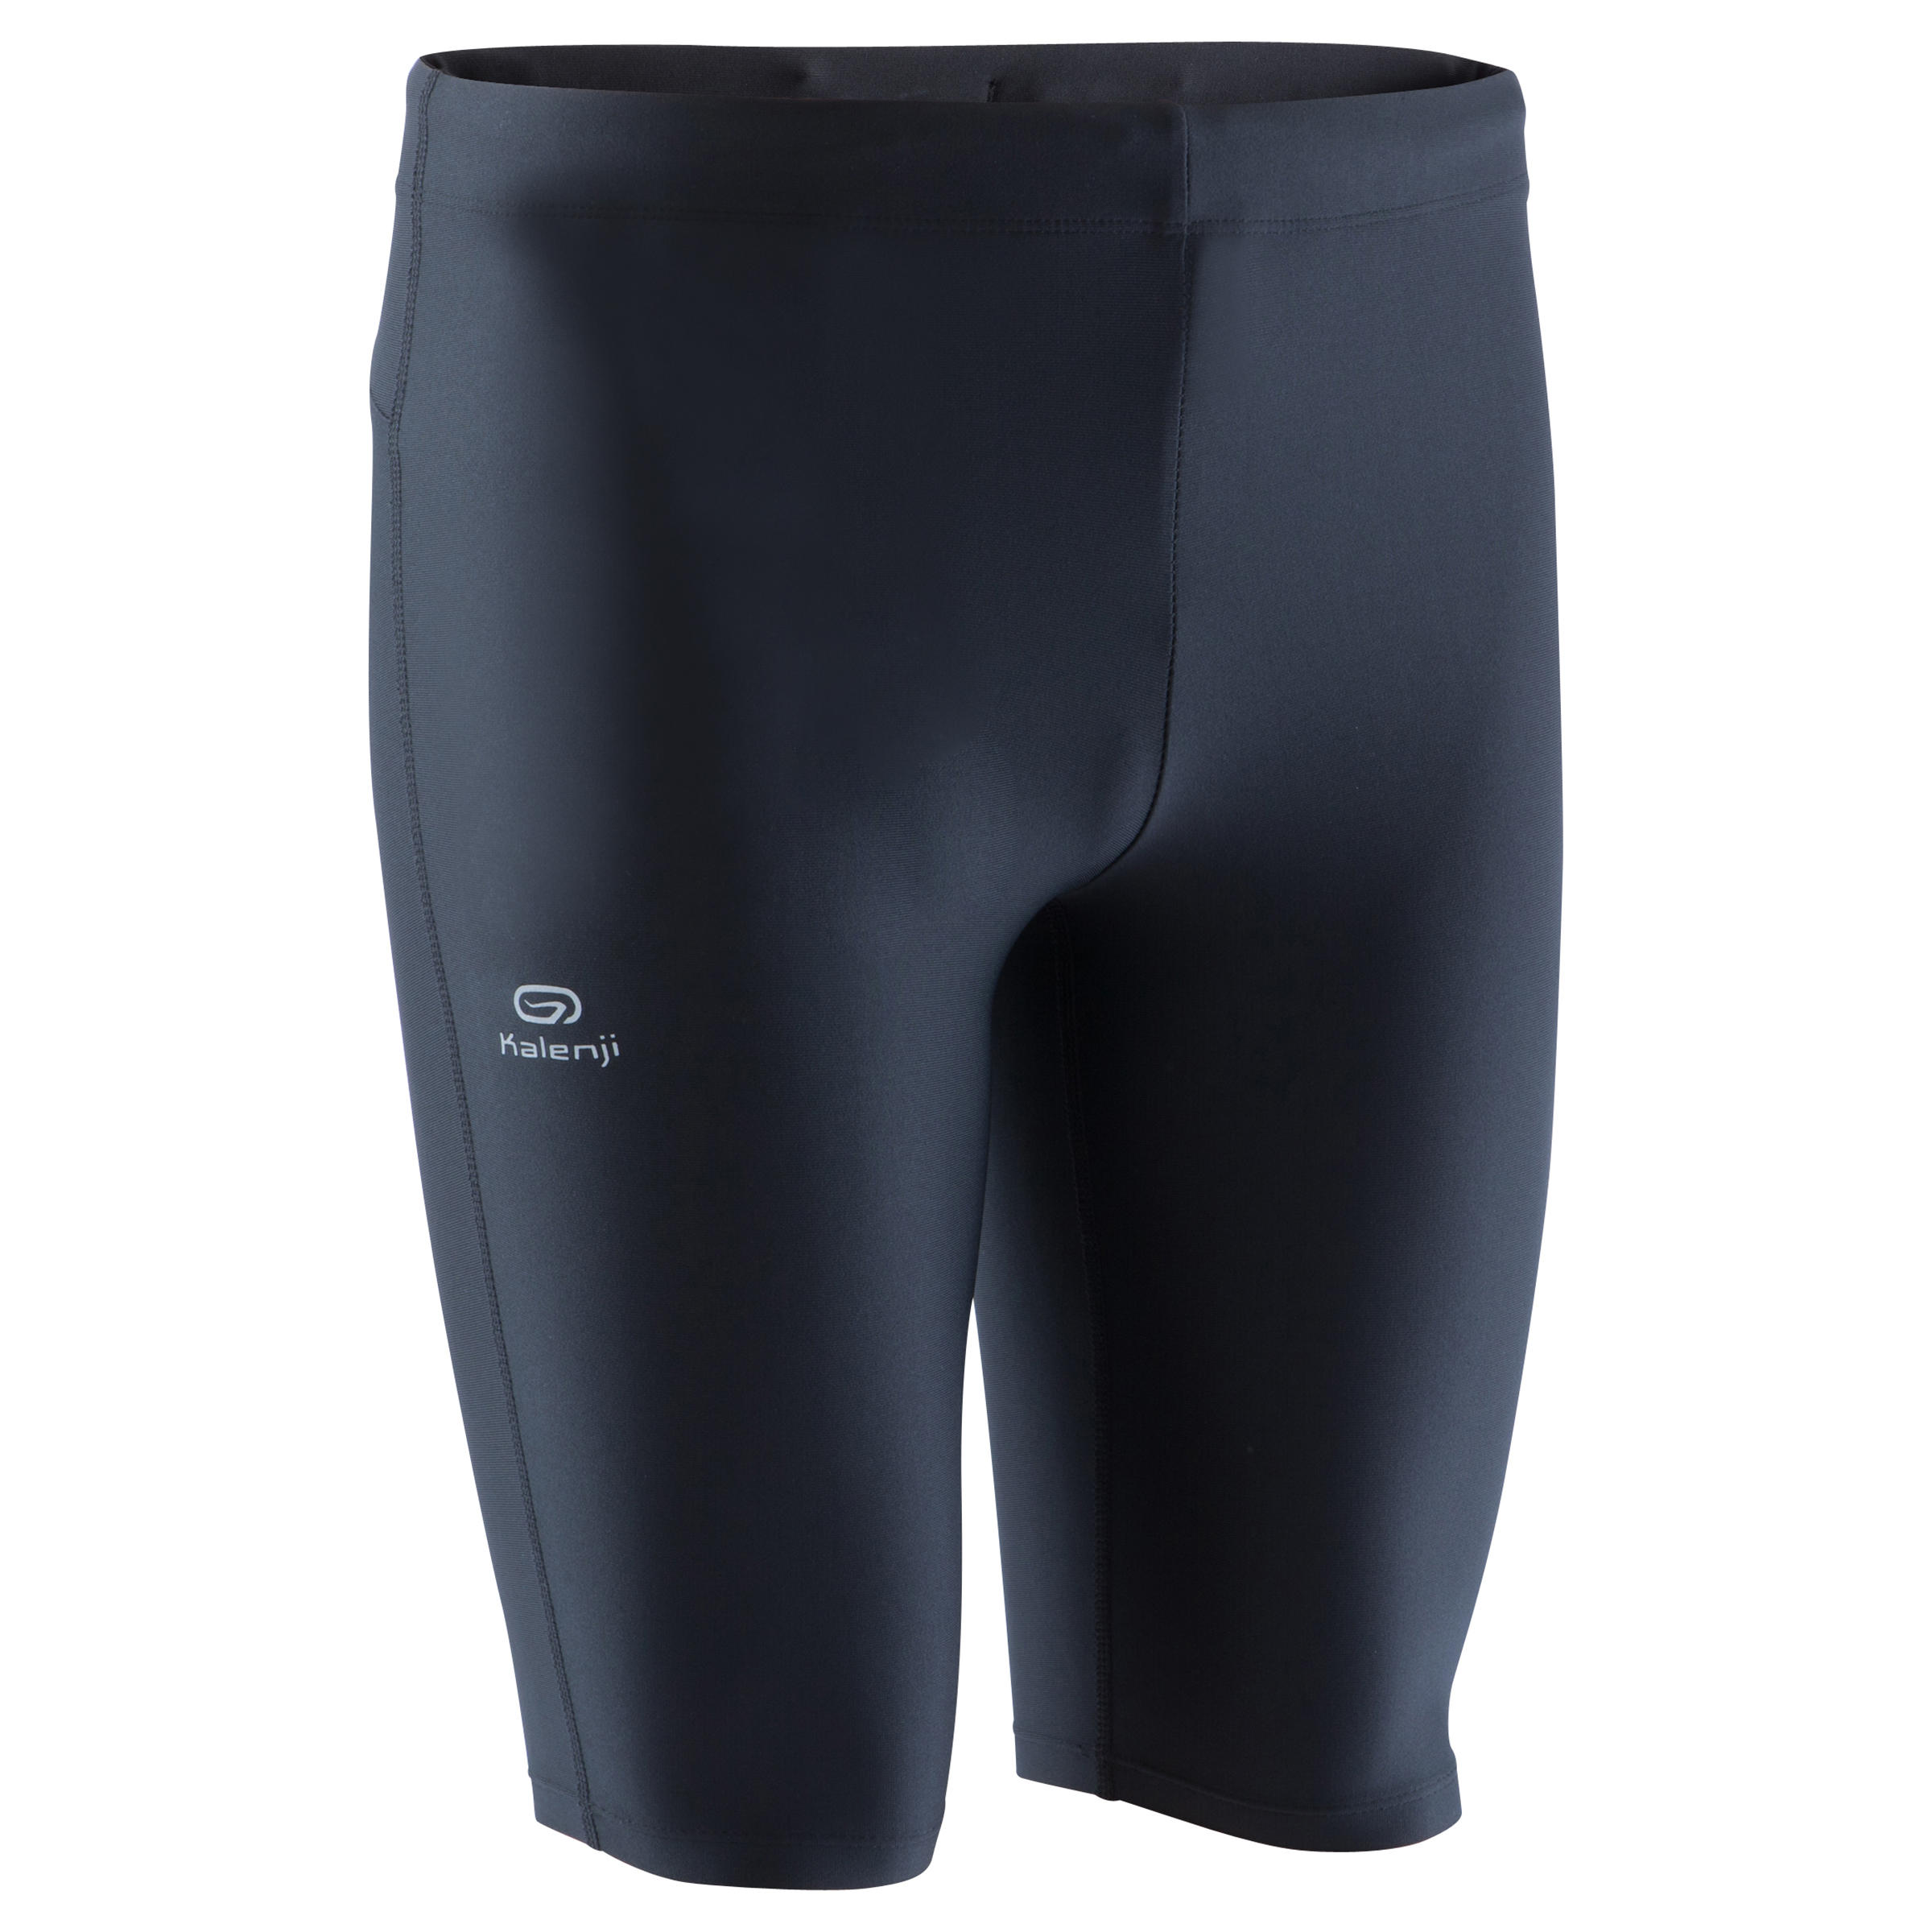 RUNNING TIGHT SHORTS RUN DRY+ MEN'S BLACK